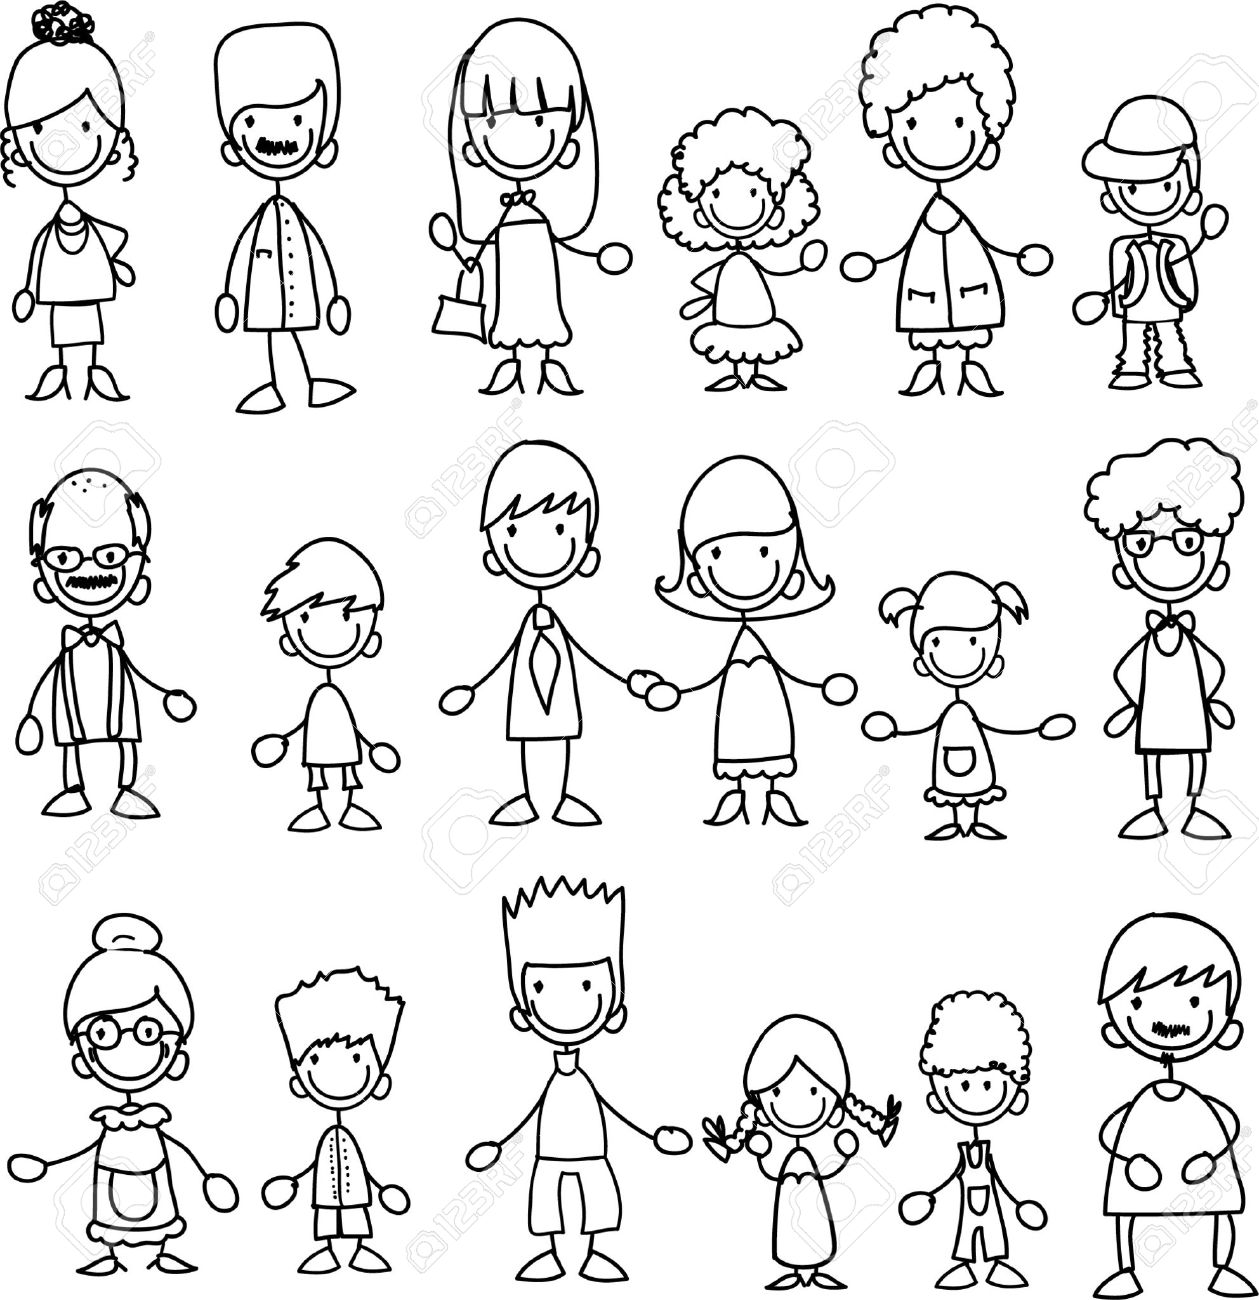 Doodle members of large families Stock Vector - 11499190